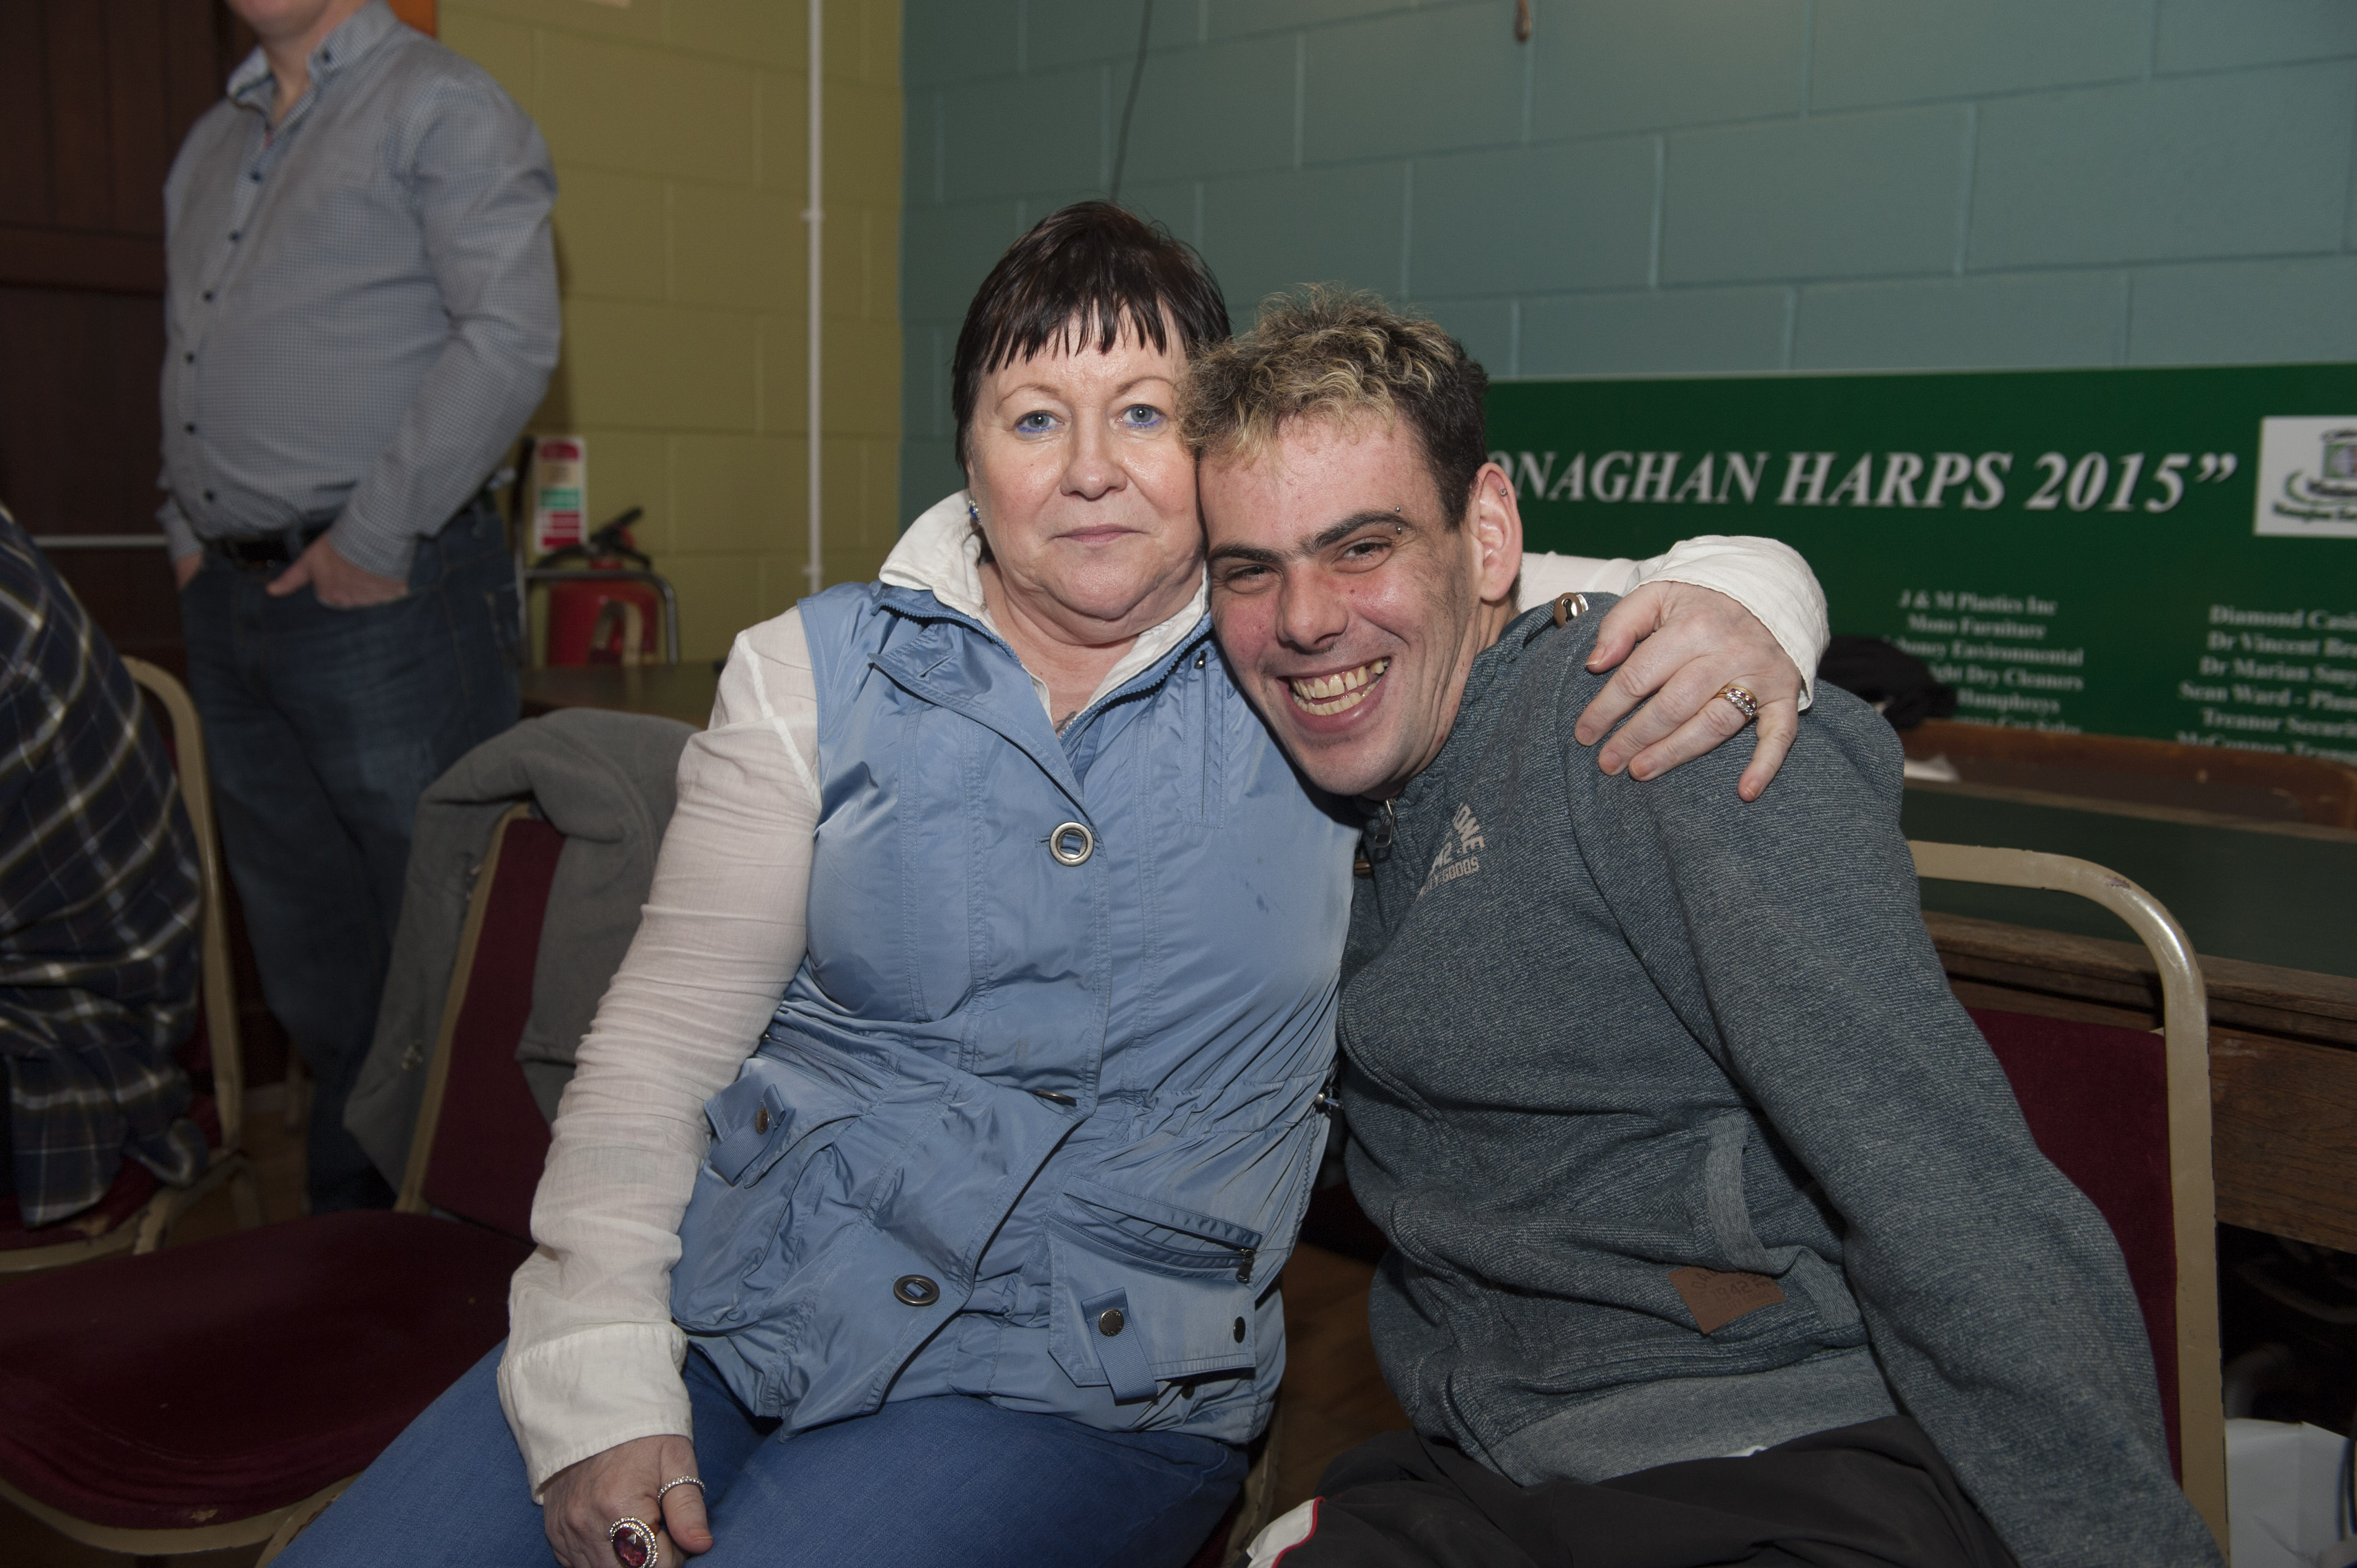 Eileen Brannigan with Padraig Crudden at the Monaghan Arch Club Party in the Monaghan Harps GFC. ©Rory Geary/The Northern Standard